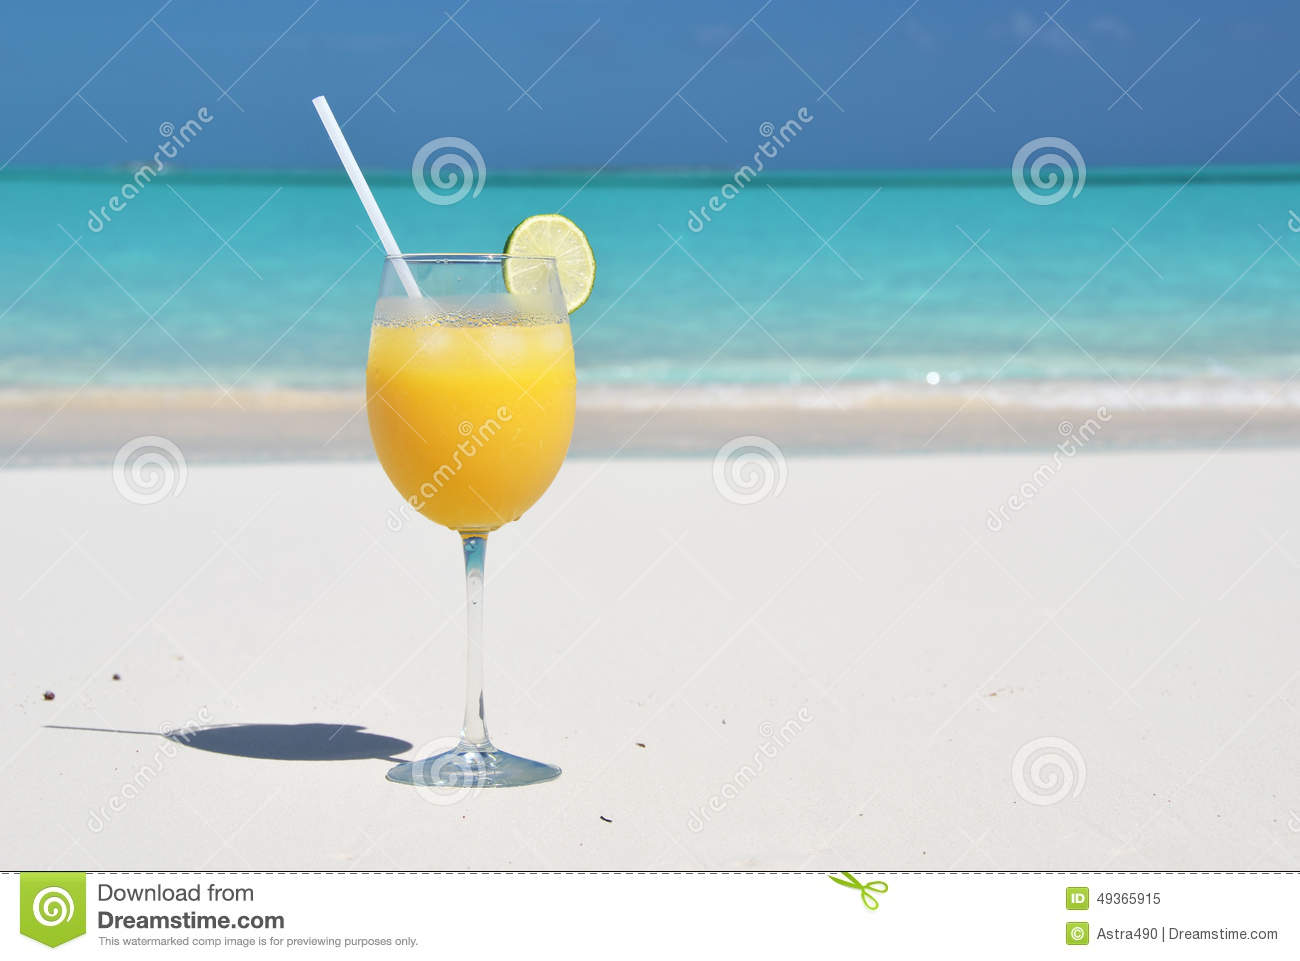 Orange juice on the beach